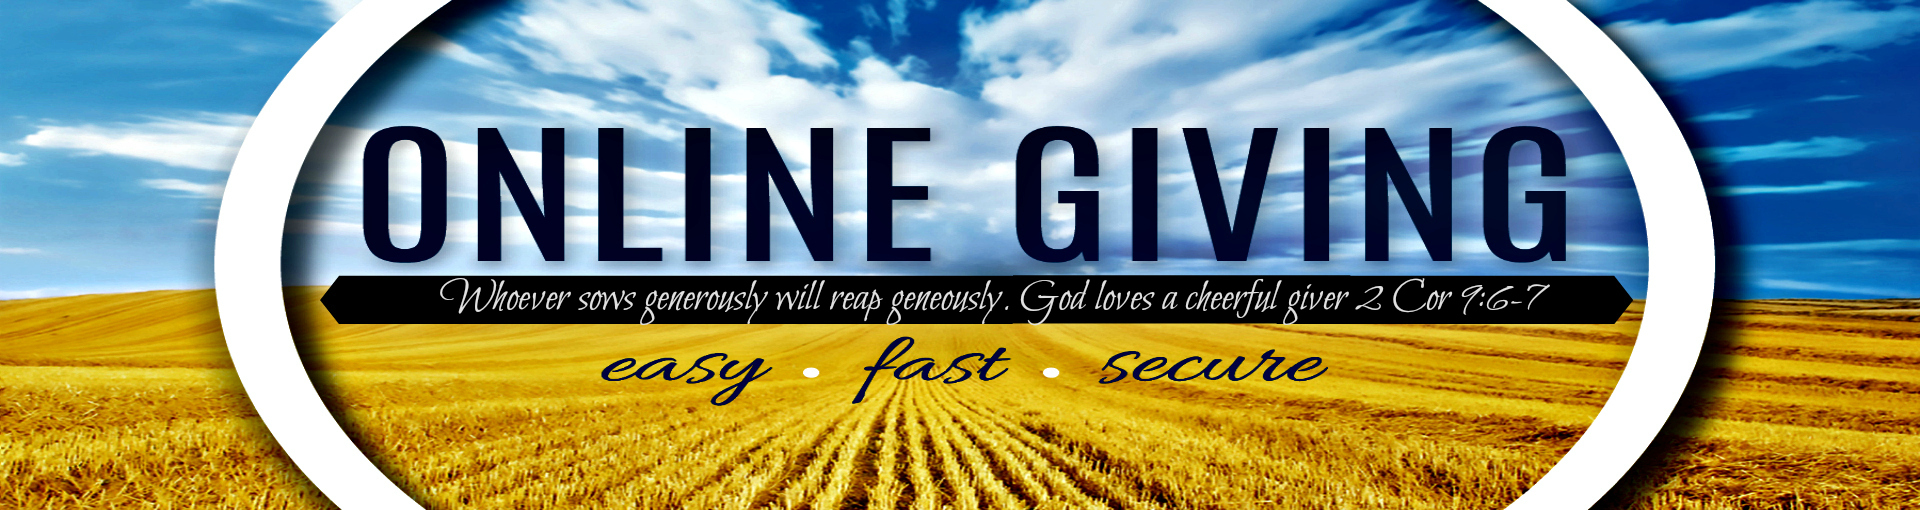 Online-Giving-Banner-1920x510